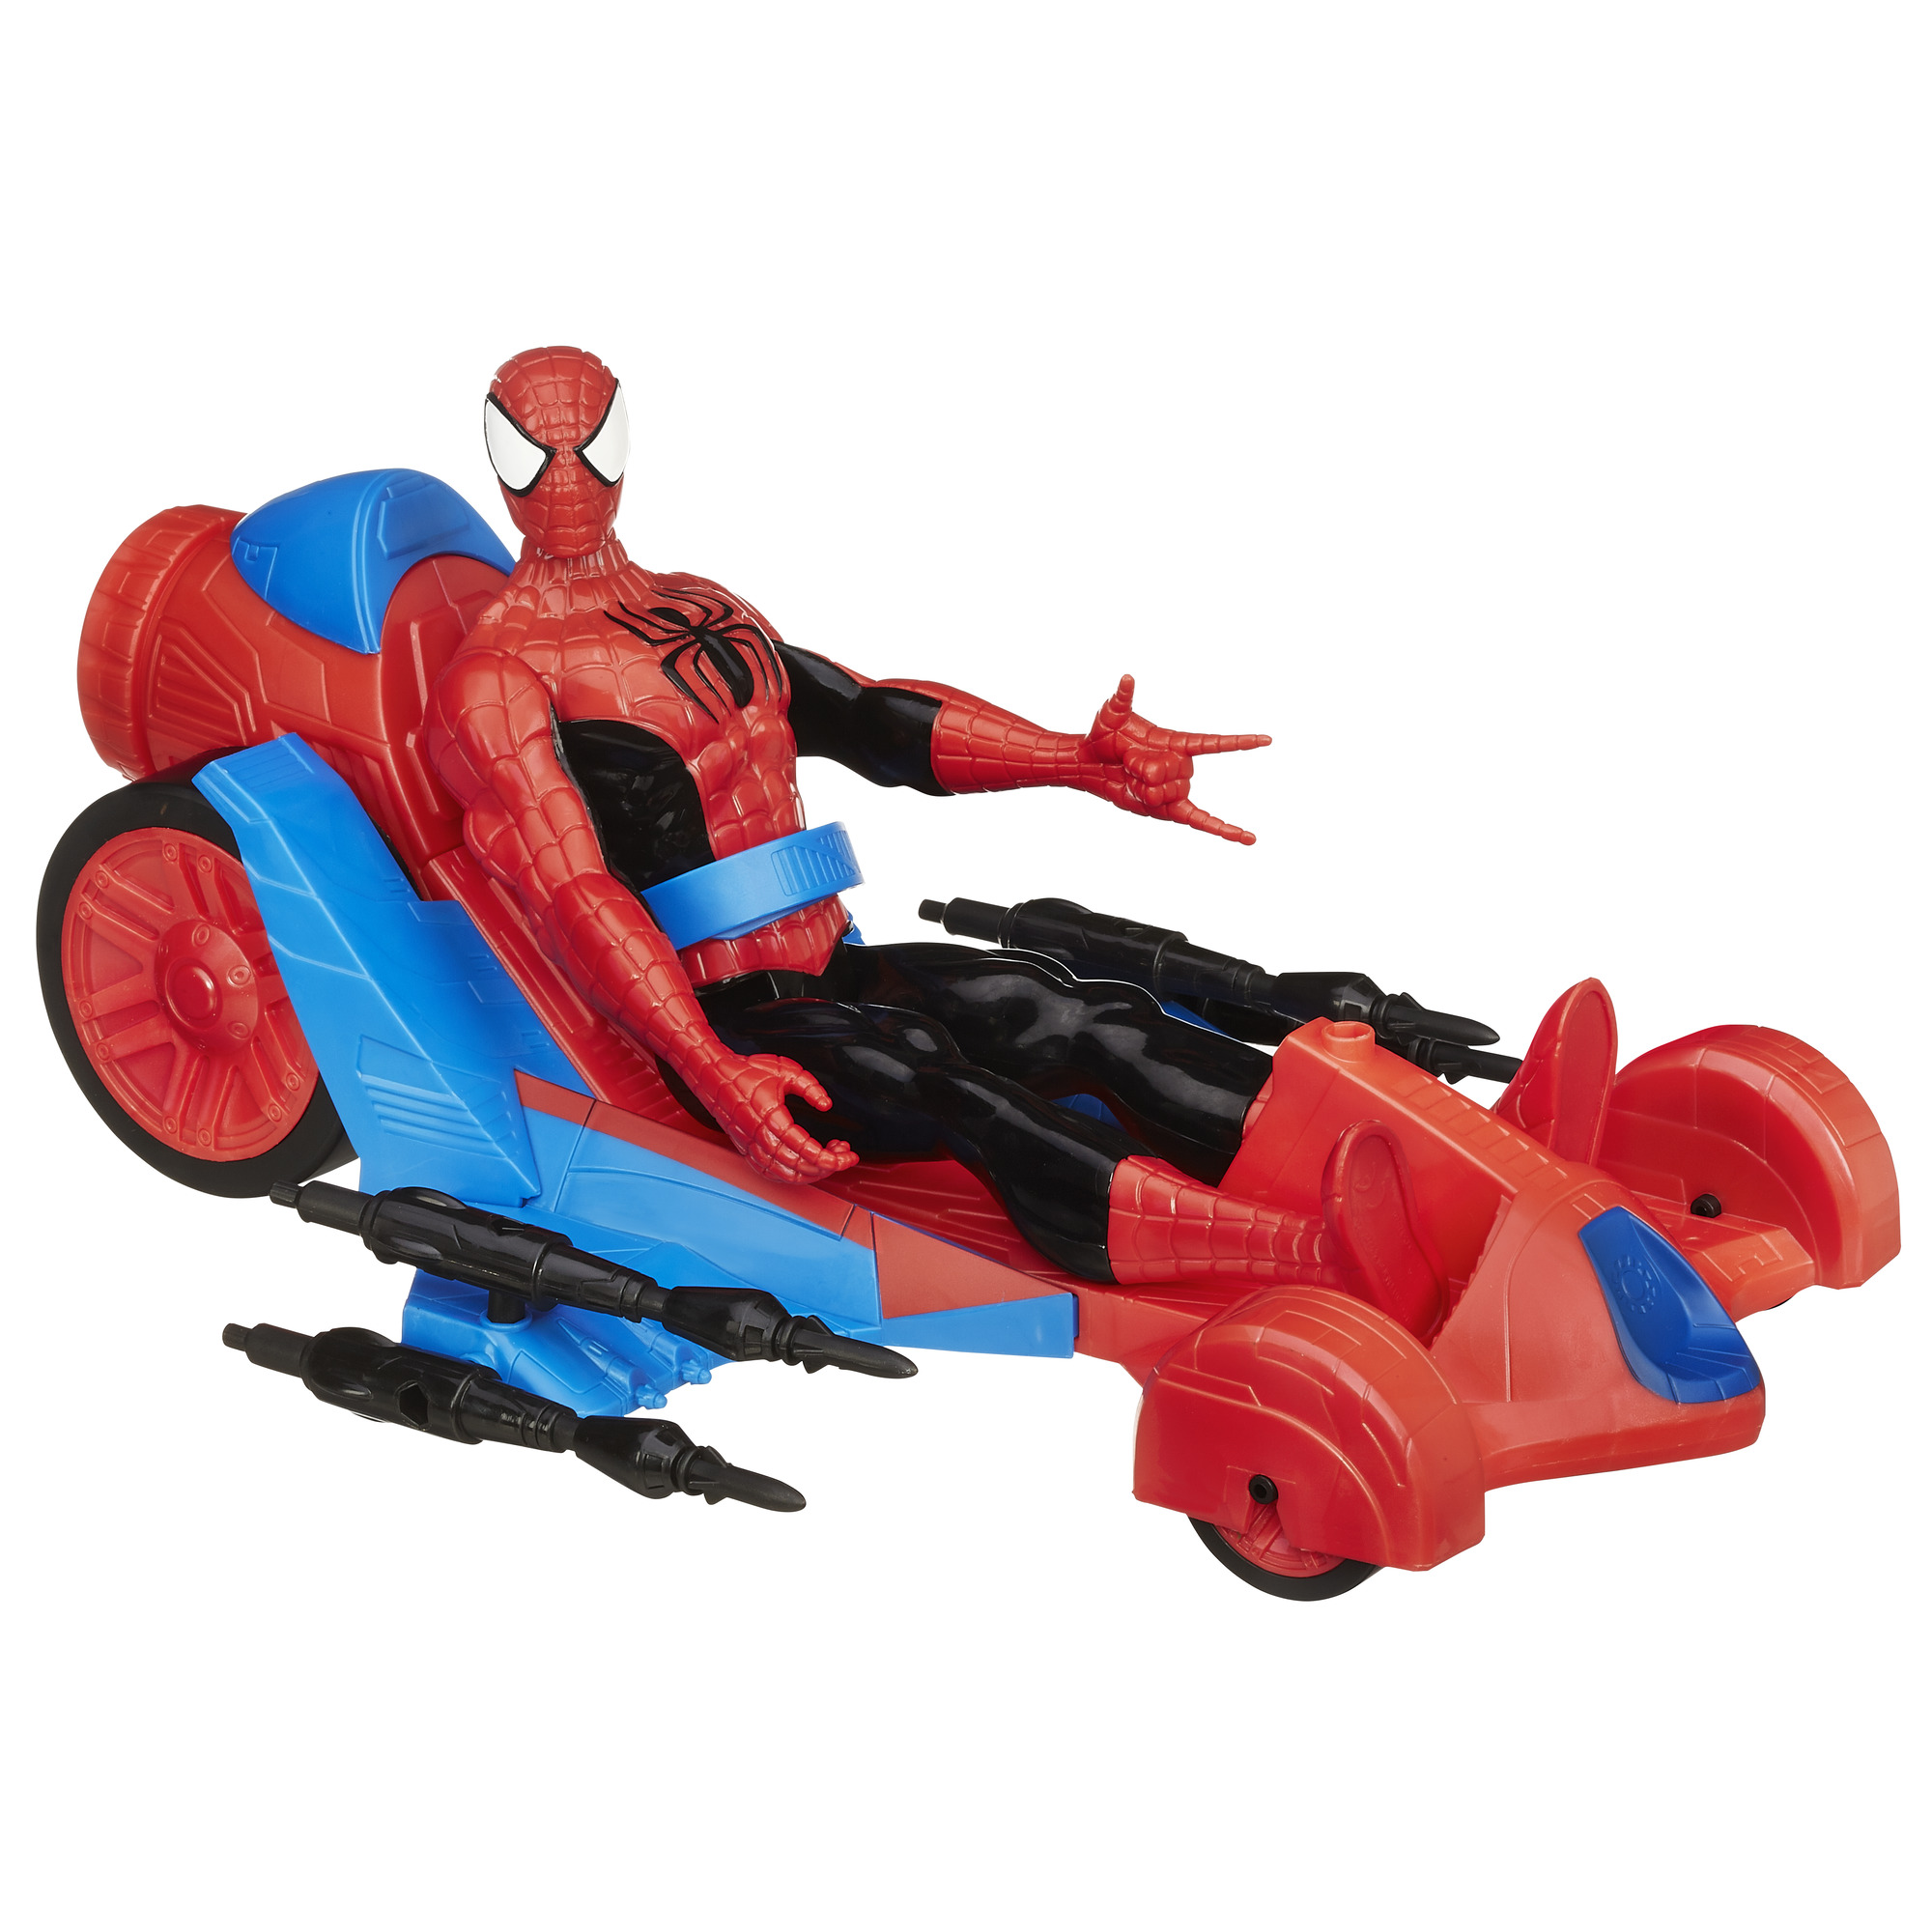 Marvel Ultimate Spider-Man Titan Hero Series Spider-Man Figure with Turbo Racer Vehicle by Hasbro